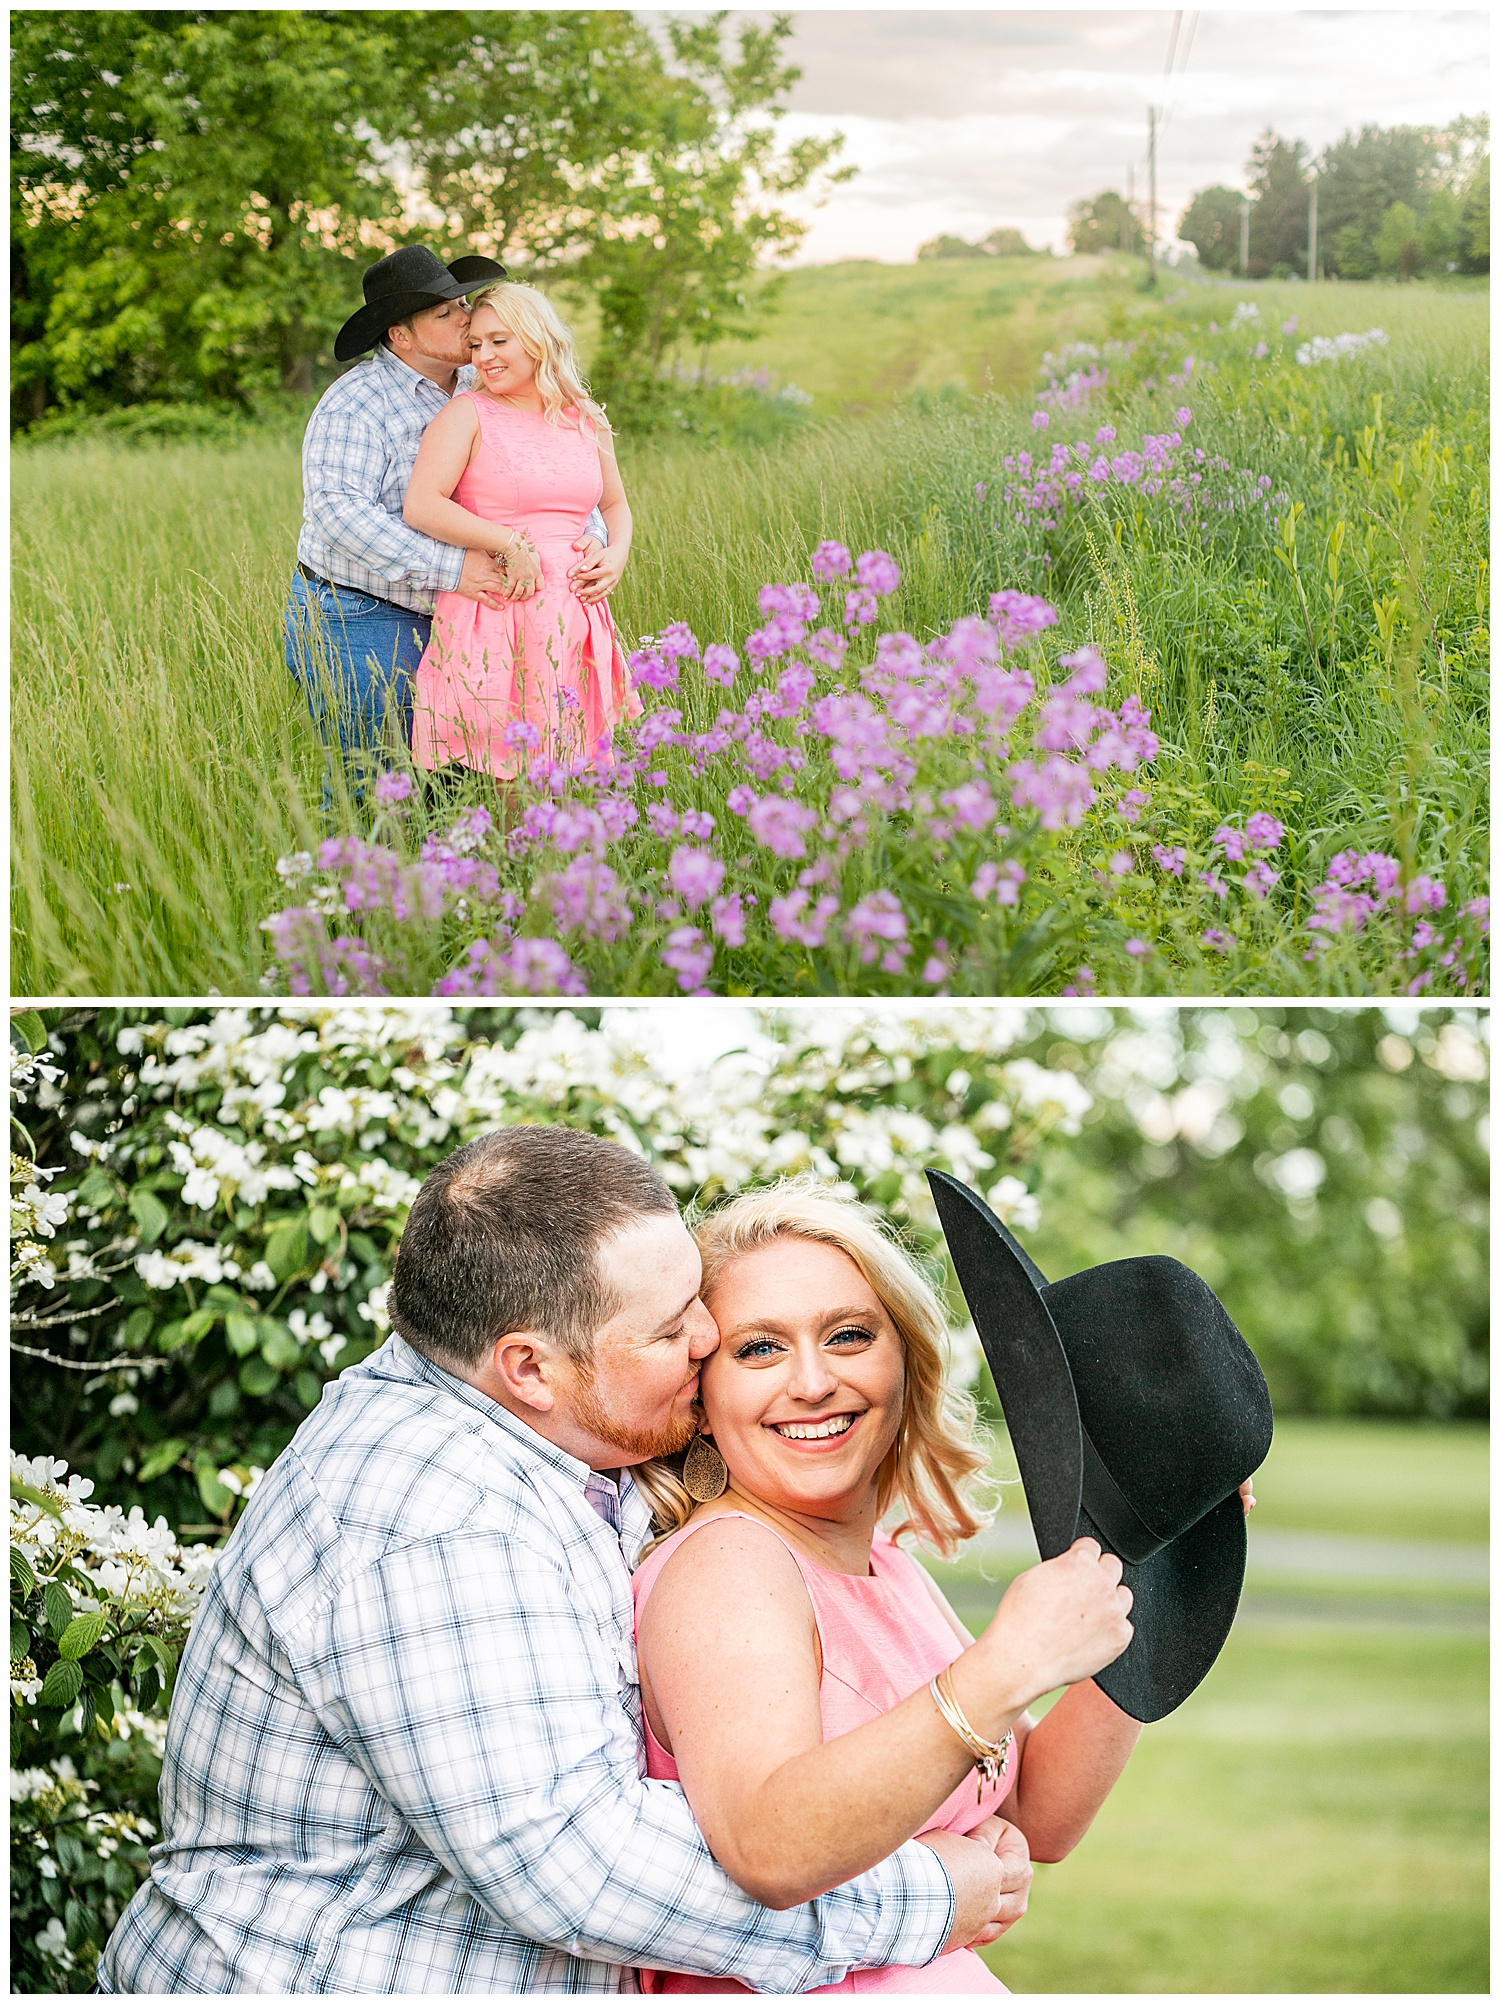 Kaitlin Justin Frederick Country Rainy Engagement Session Living Radiant Photography_0023.jpg